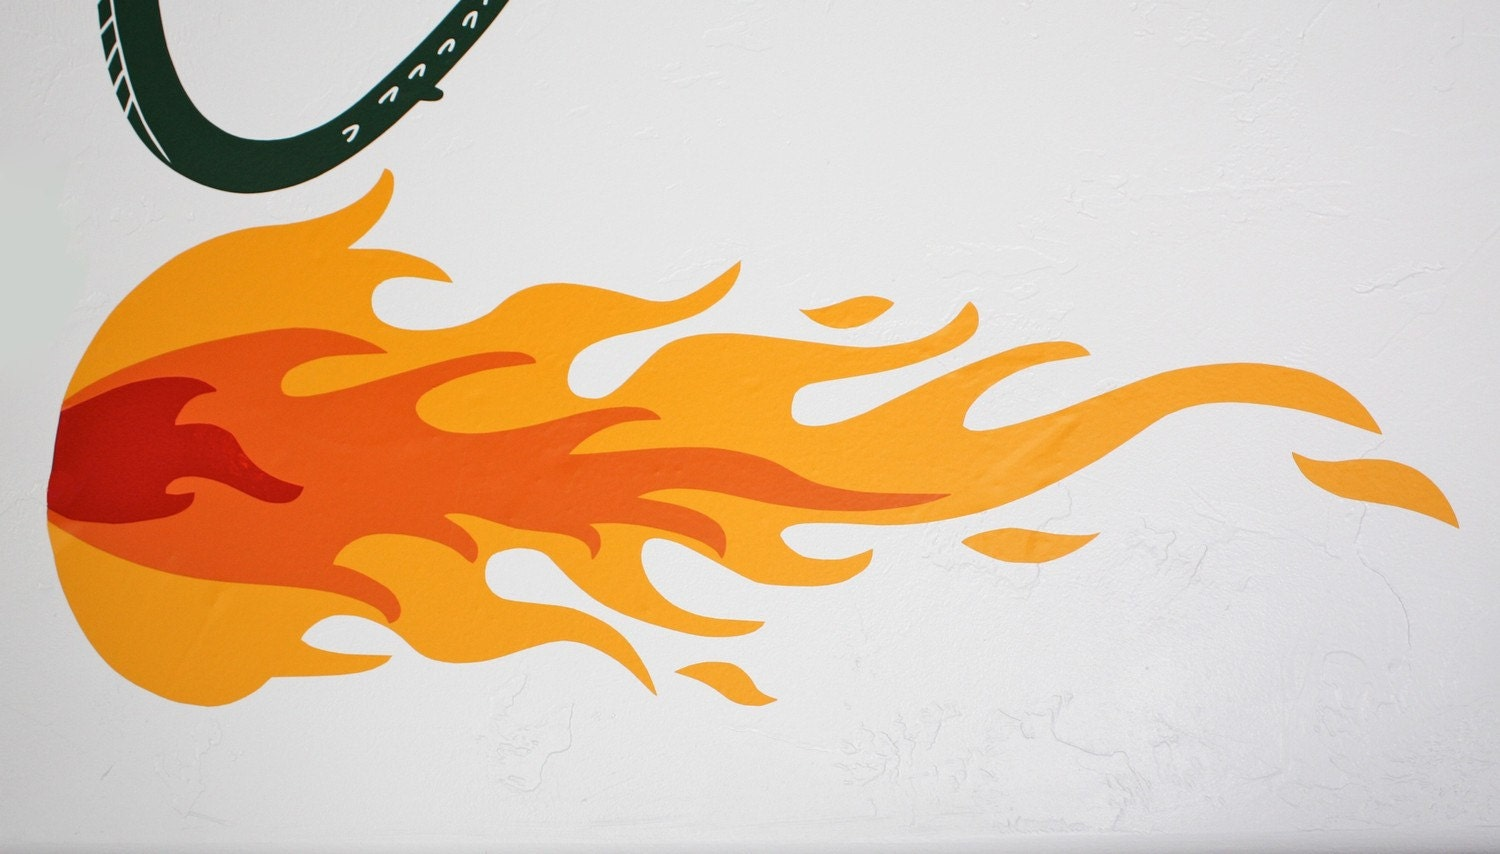 Fire Flame for Dragon Vinyl Wall DecalFire Flames Dragon